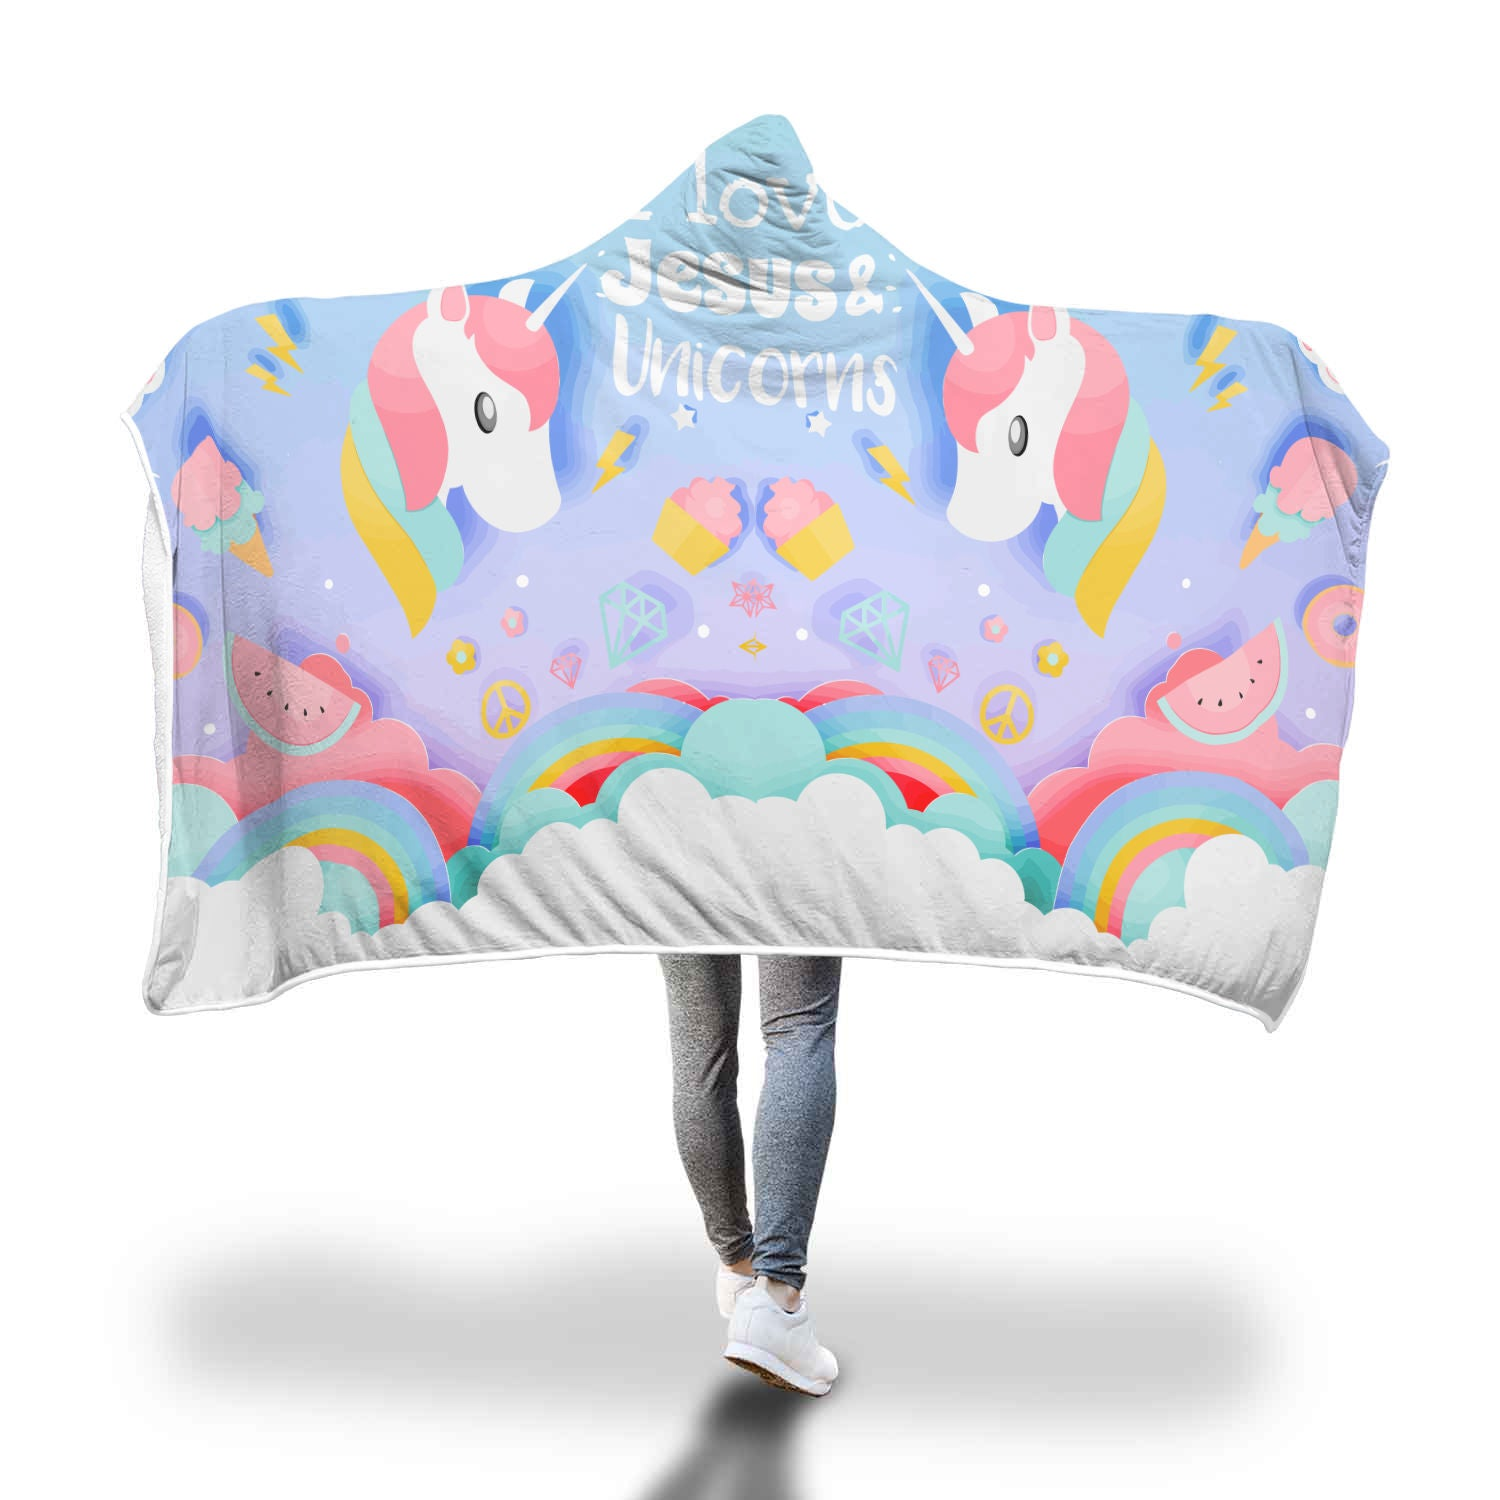 VIRA Awesome Hooded Blanket For Jesus & Unicorns Lovers